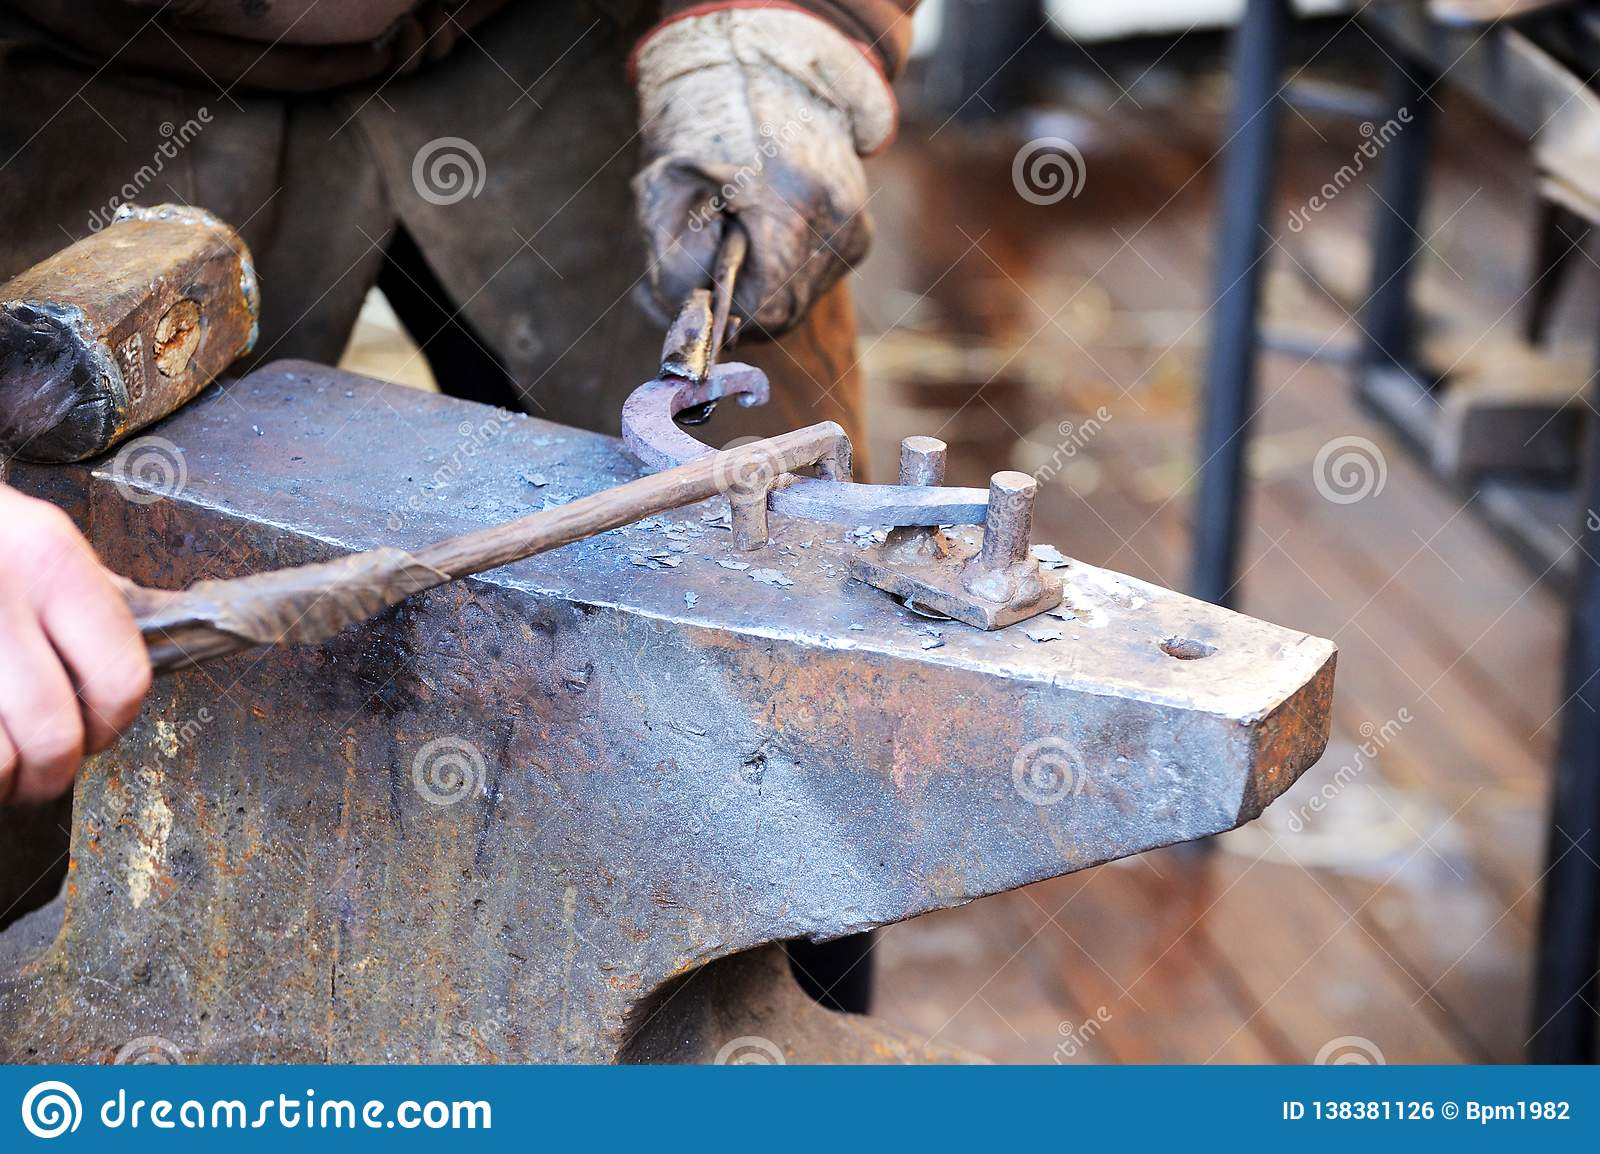 Blacksmith Working Metal With Hammer On The Anvil Stock Photo